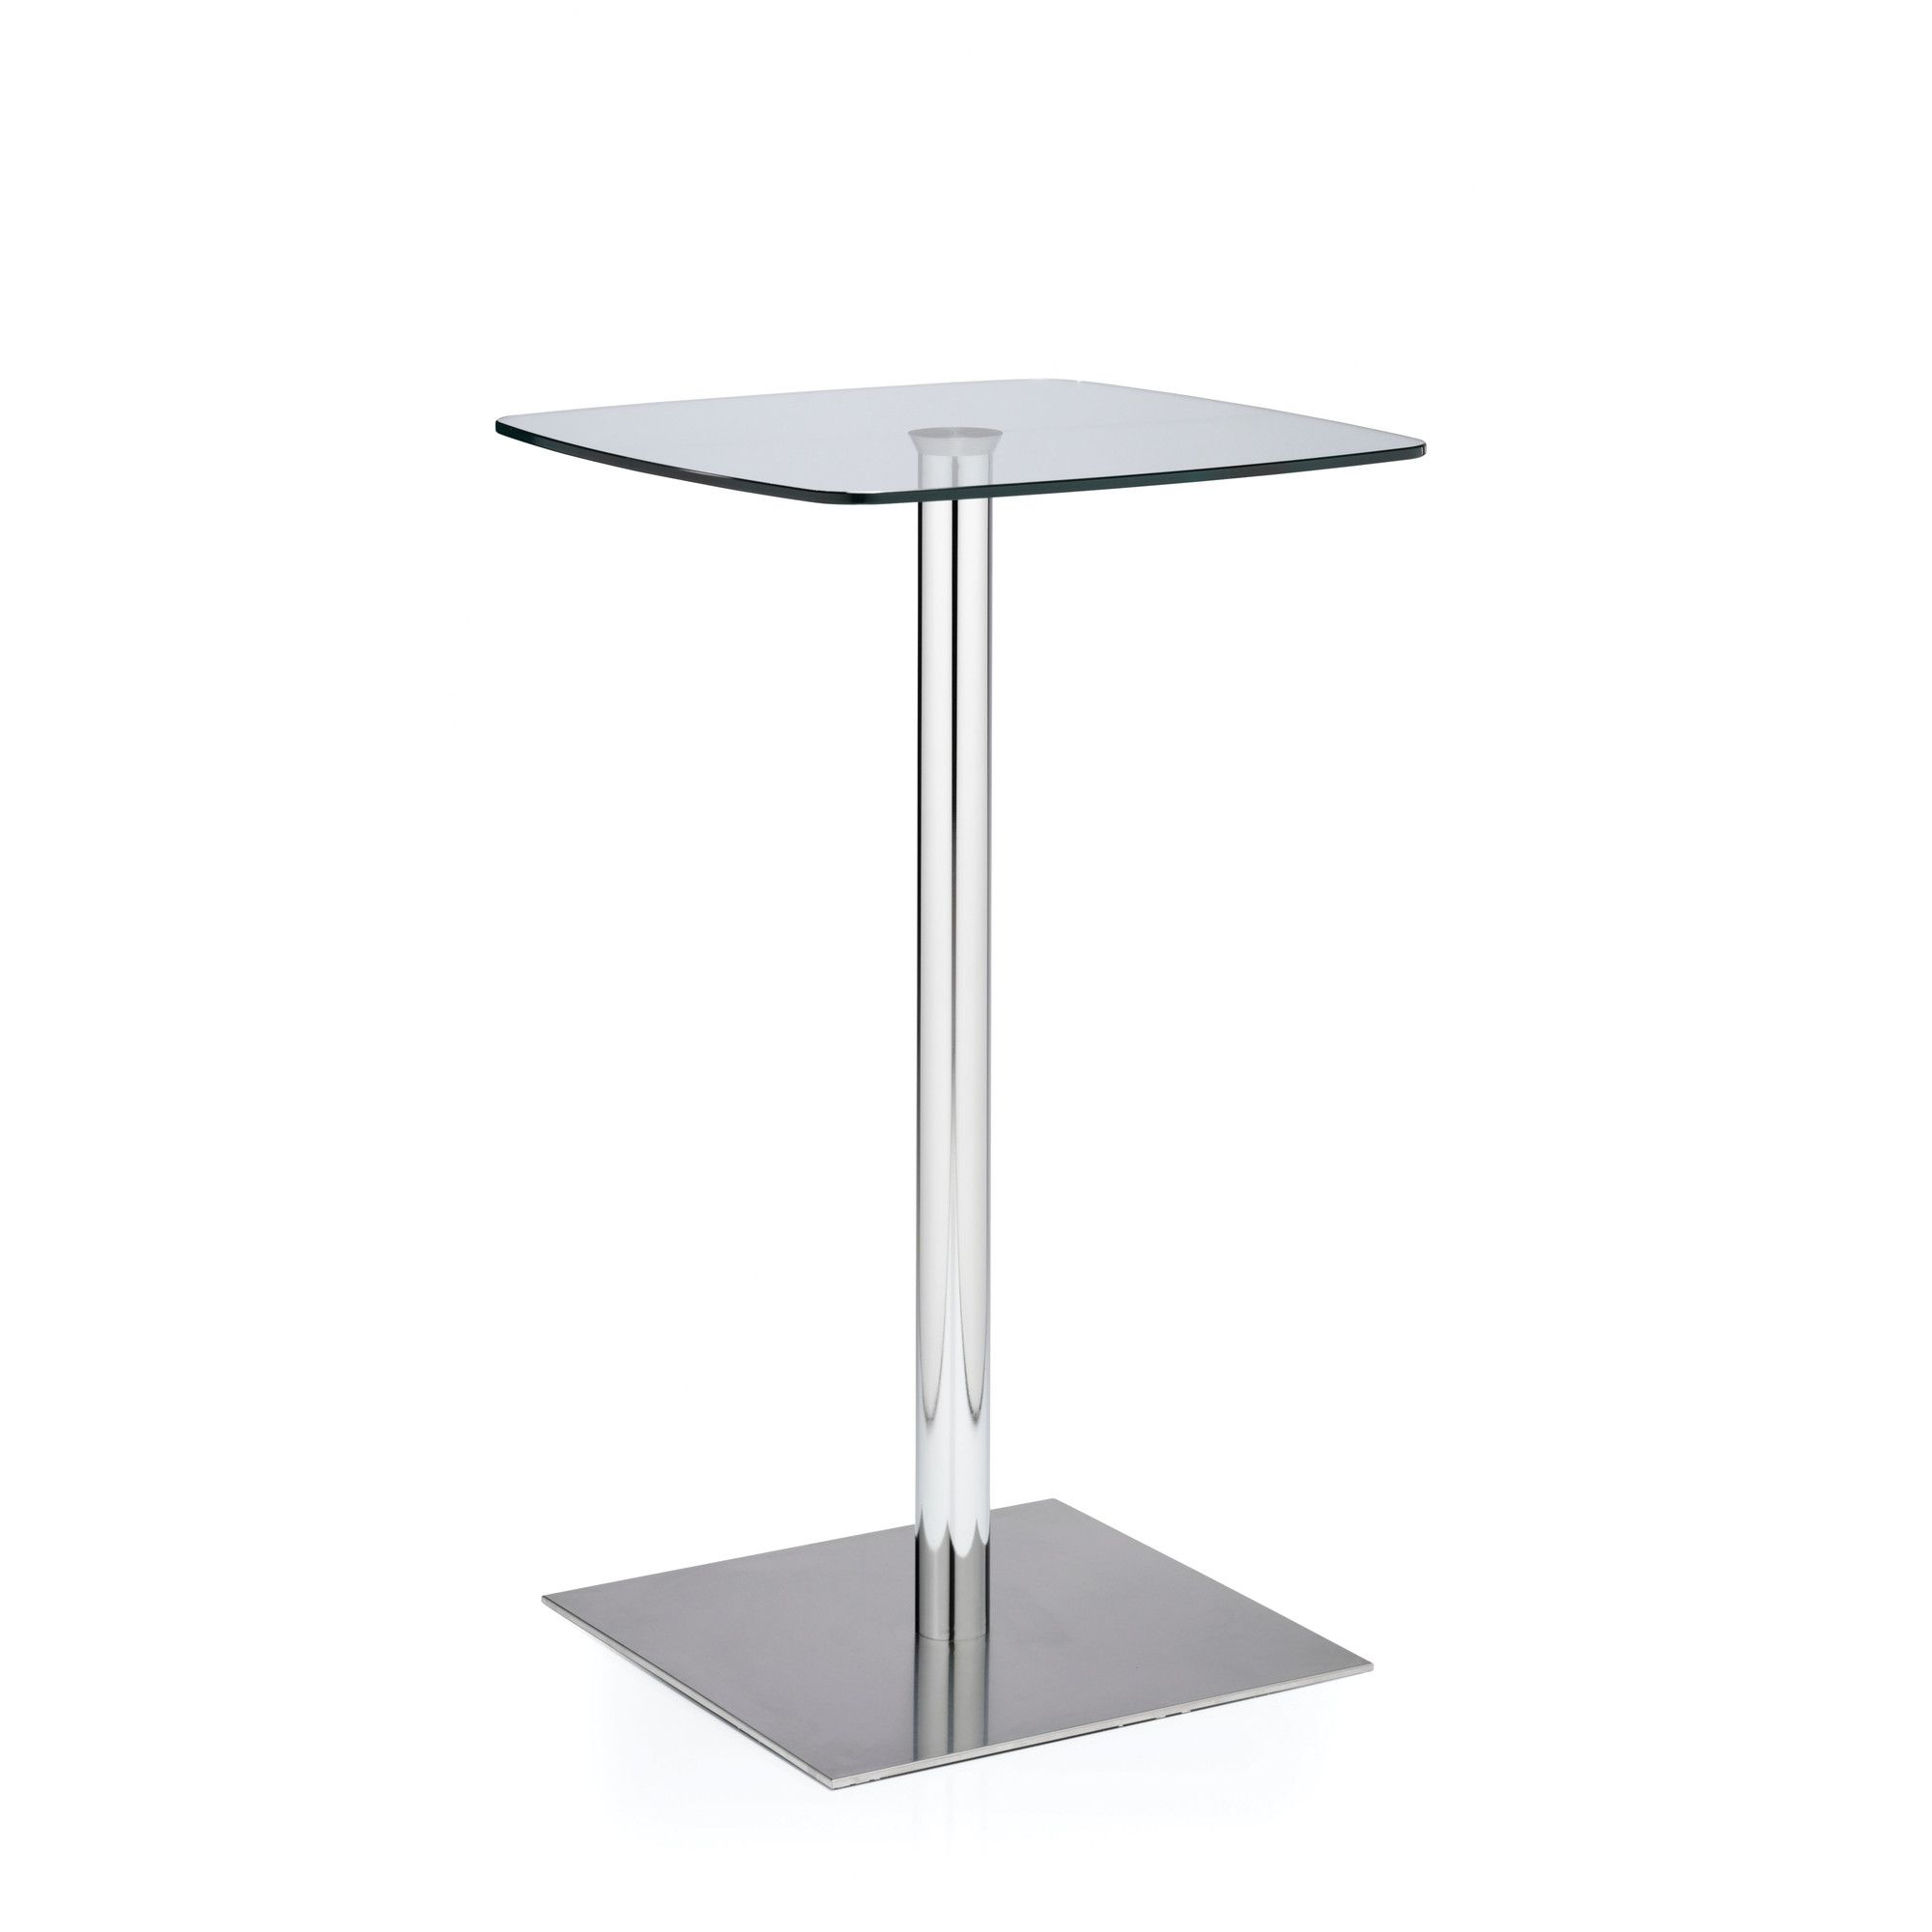 Ocee Design Venalo Square Base Poseur Table at Tescos Direct